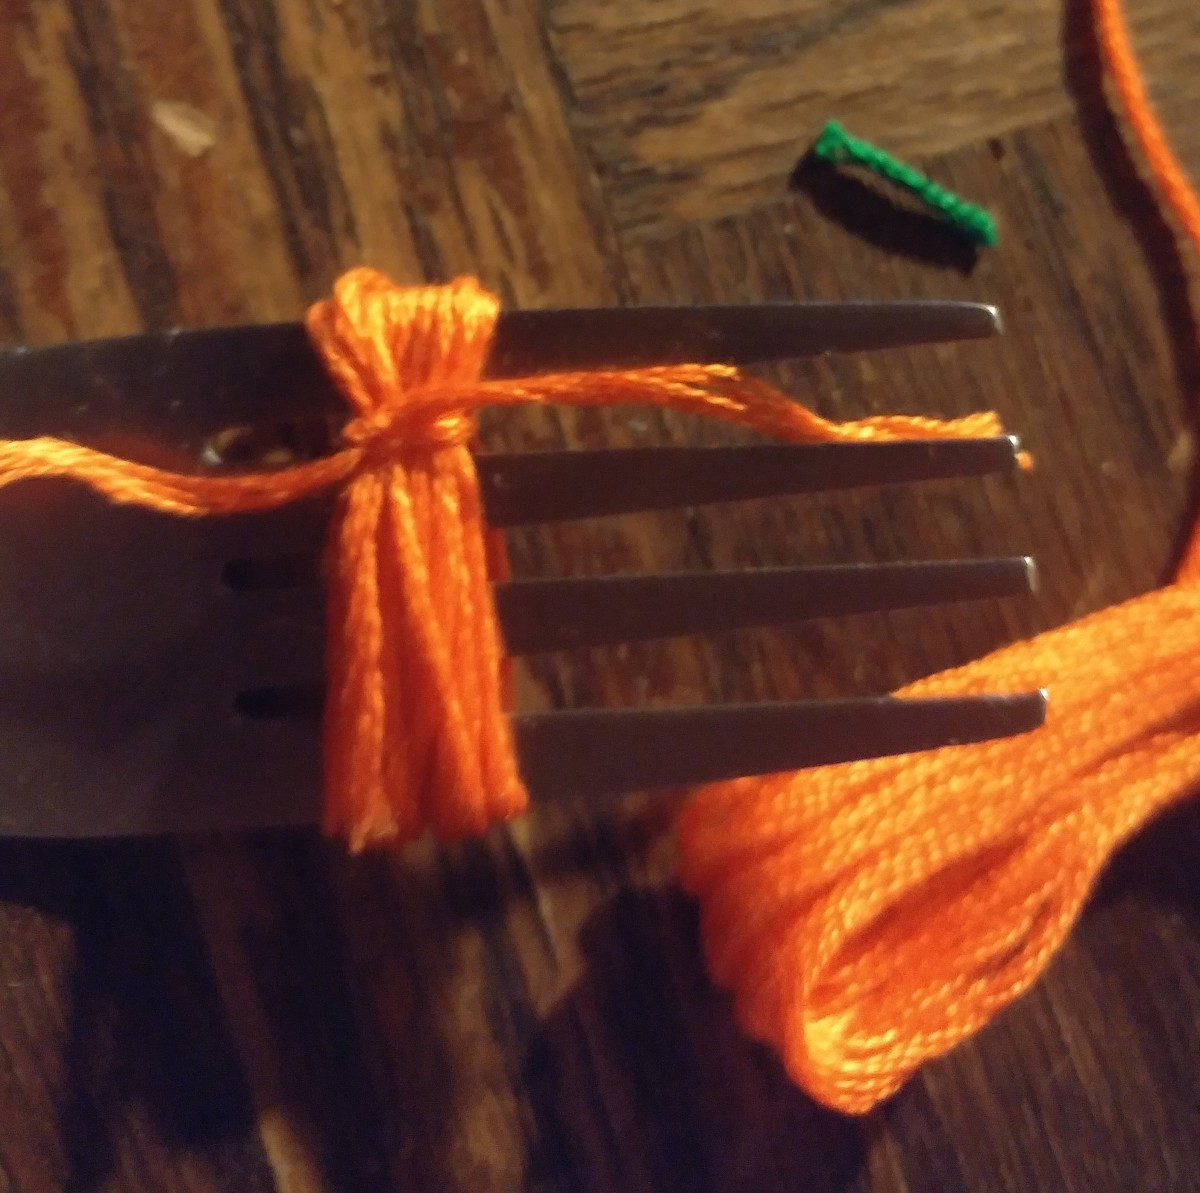 Slip thread through fork to tie knot around top of tassel.